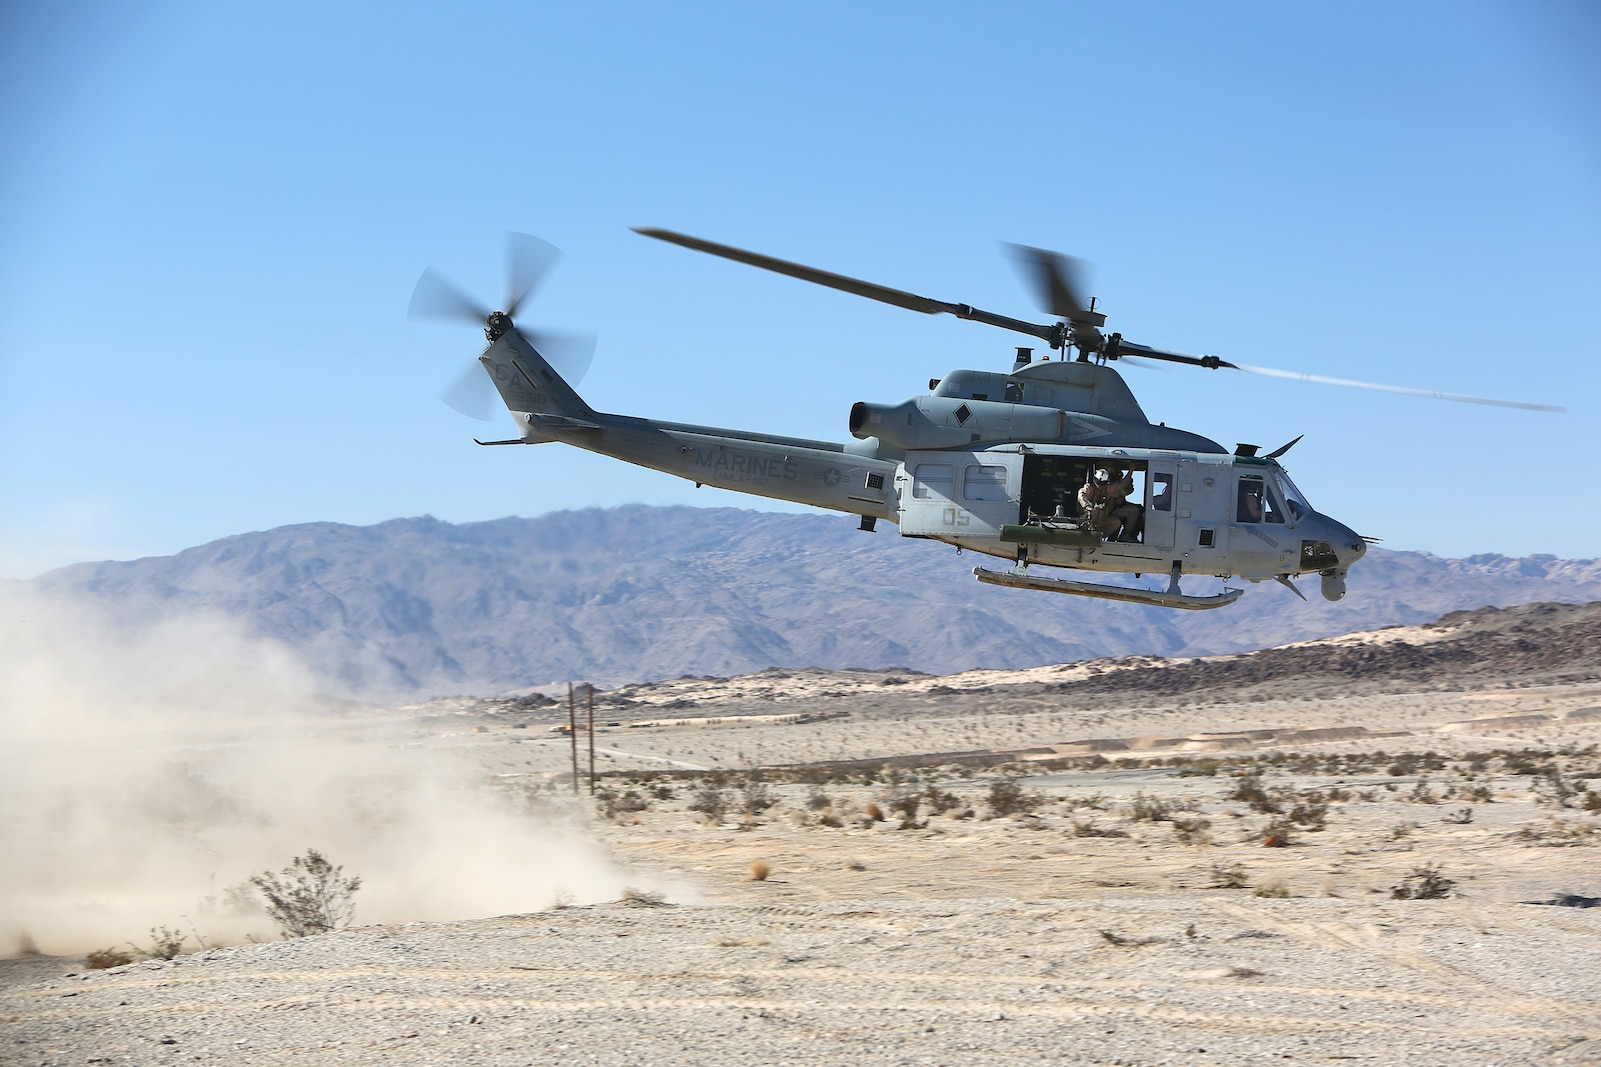 A UH-1Y Huey takes-off with simulated casualties when Combat Logistics Battalion 1, Combat Logistics Regiment 1, 1st Marine Logistics Group, conducted the Marine Readiness Exercise aboard Marine Corps Air Ground Combat Center Twenty-nine Palms, Calif., March 26, 2014. The MRX is part of the month-long Integrated Training Exercise 3-14 that prepares the battalion for its role as the logistics combat element in the final combat deployment in support of Operation Enduring Freedom.